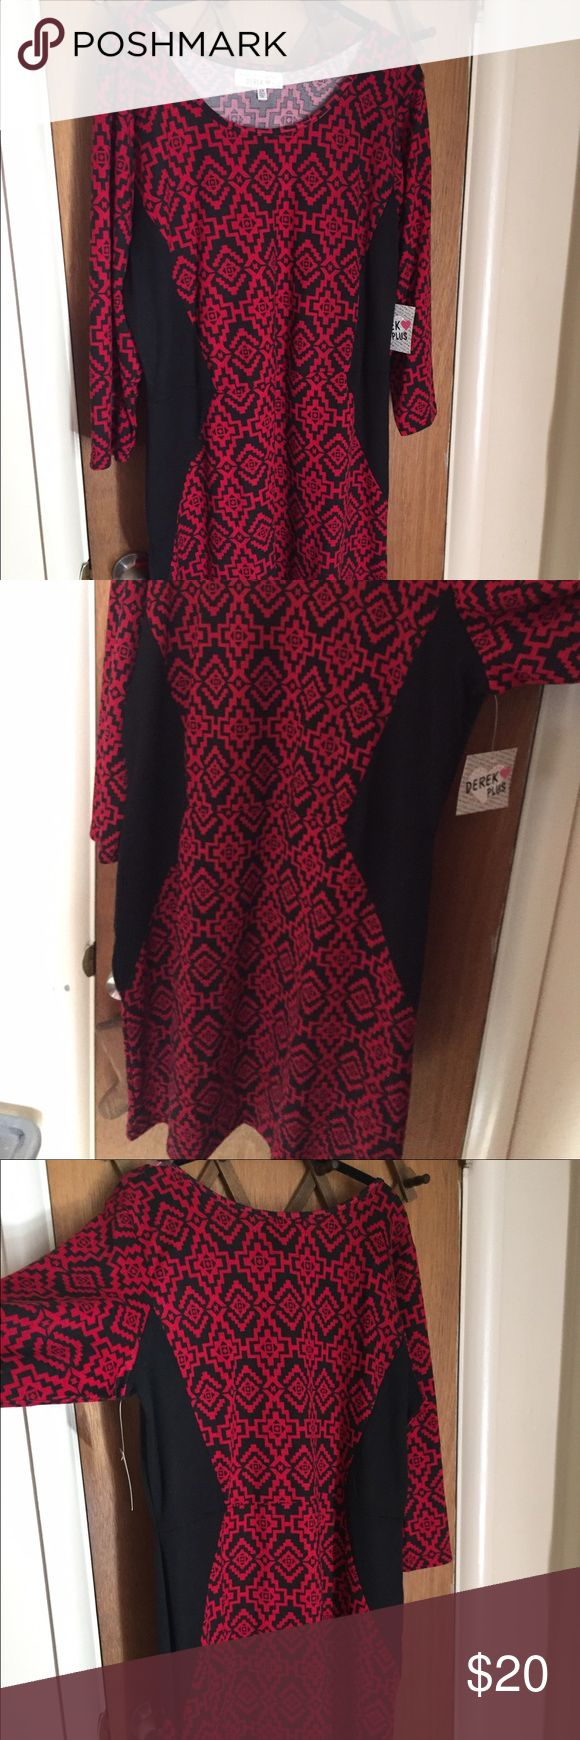 Red and Black Bodycon Dress Brand new red and black patterned bodycon dress. Slimming black accents down both sides. Comes to just above the knees. Derek Heart Dresses Midi